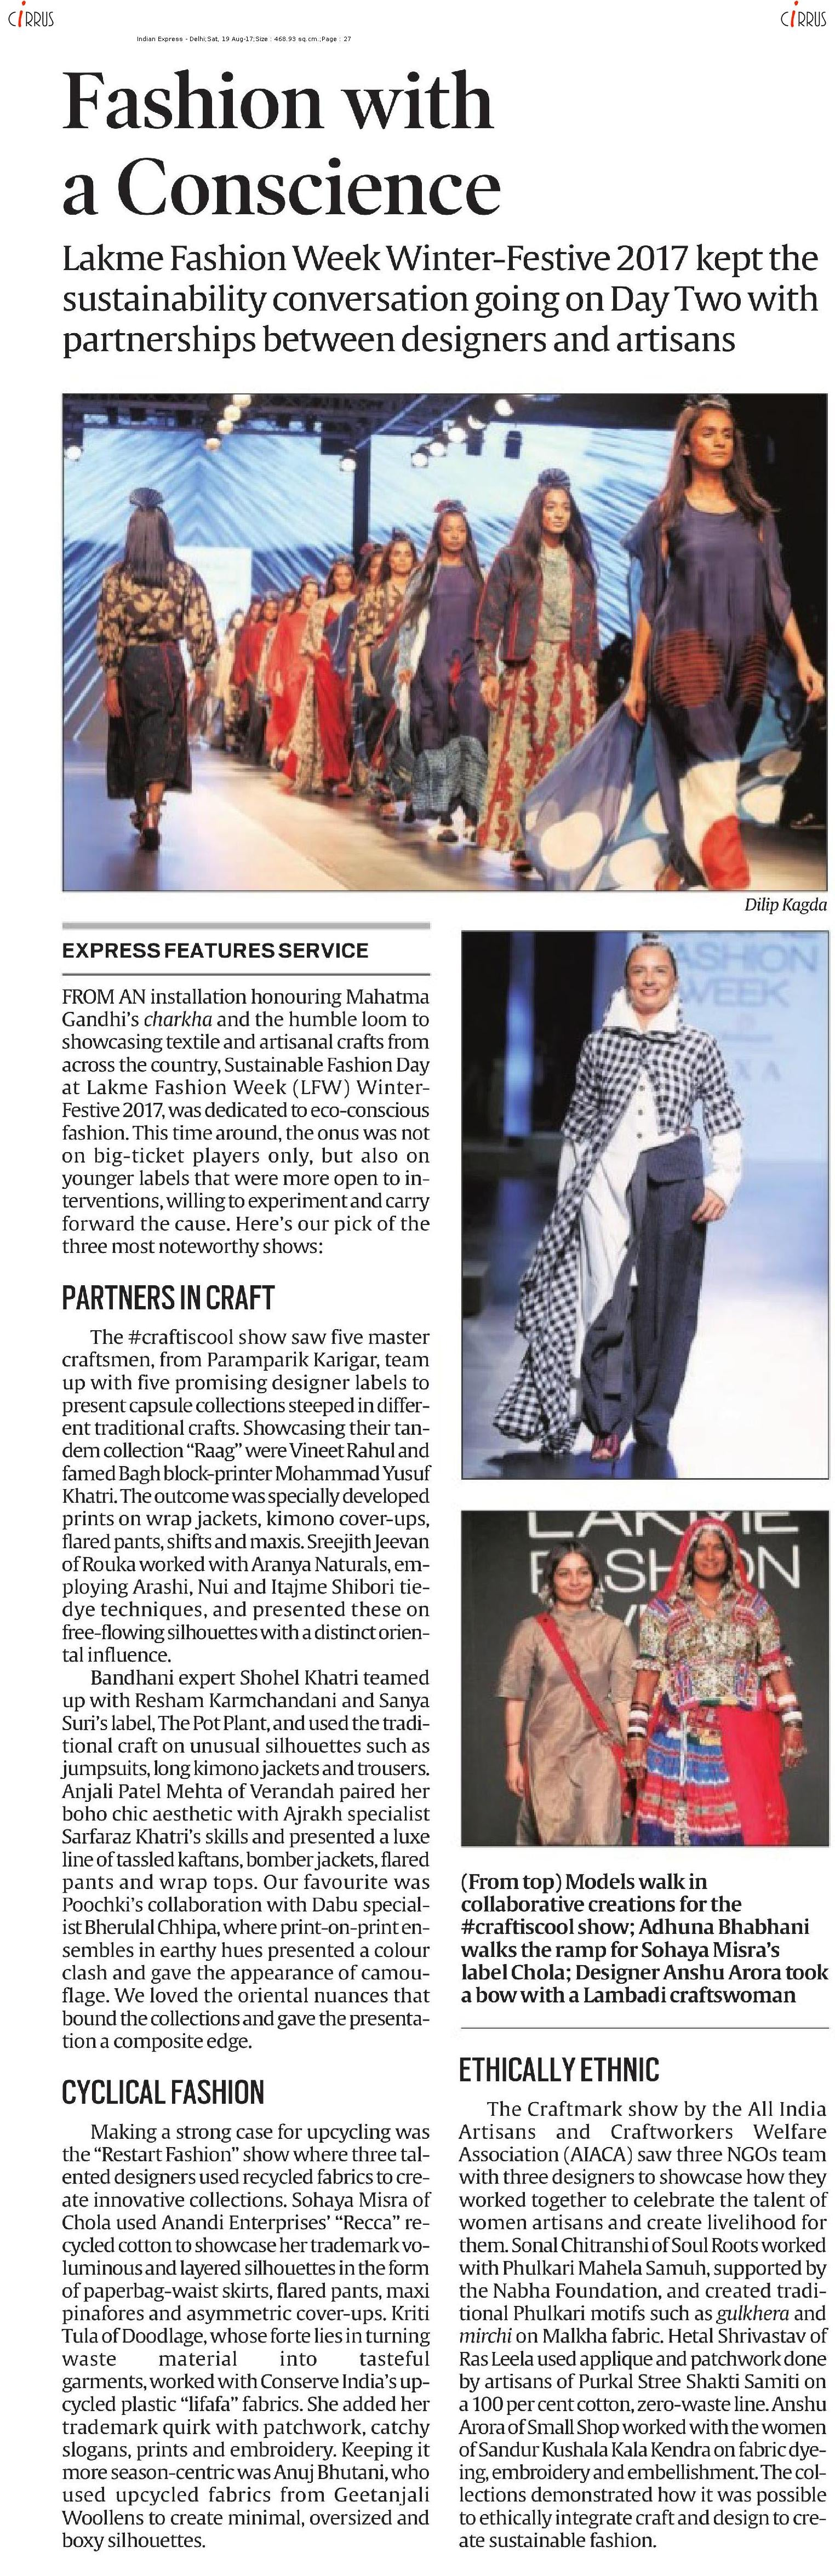 The Indian Express, pg 27